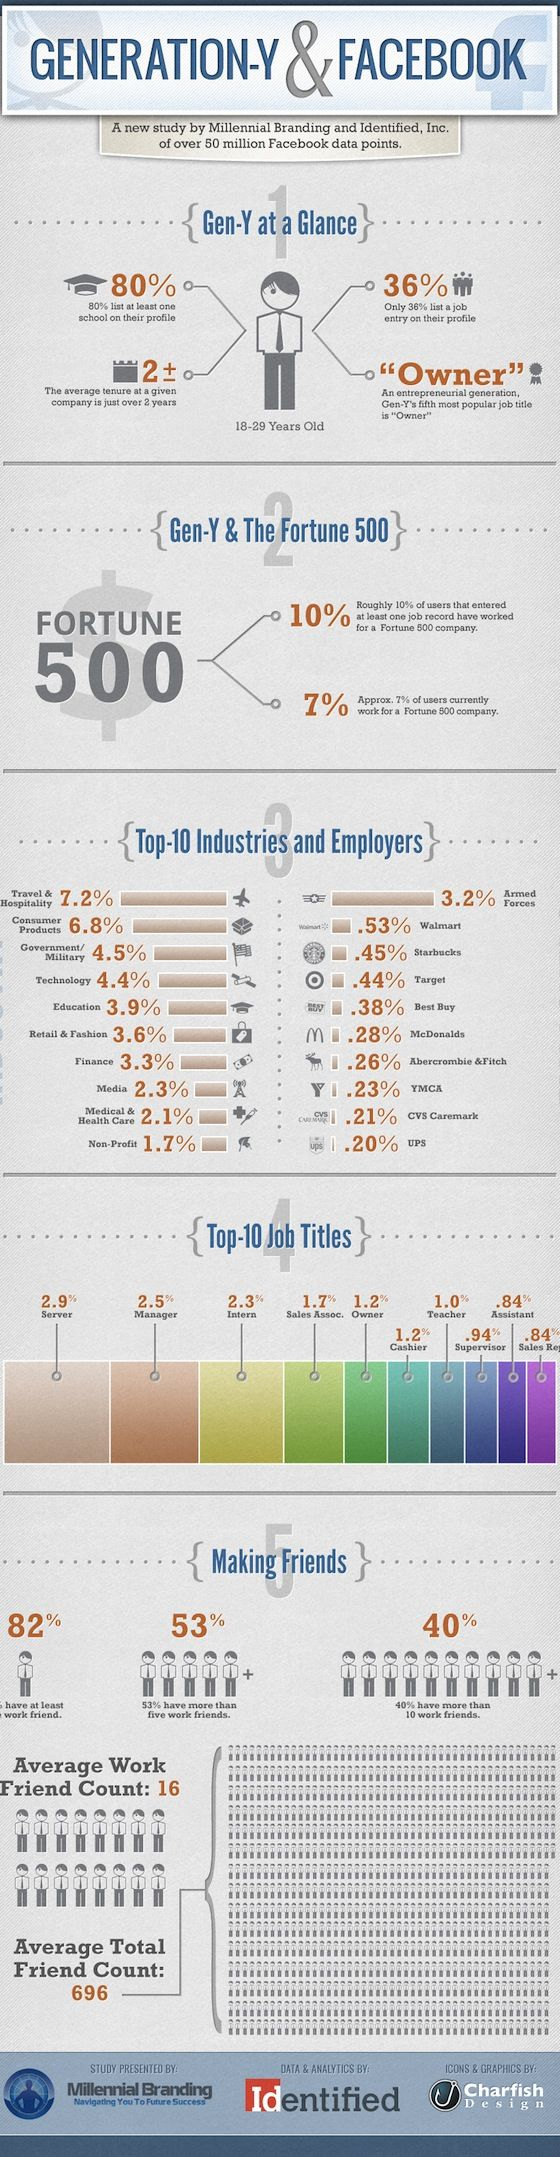 How Generation Y Use Facebook for Professional Networking [INFOGRAPHIC] on http://theundercoverrecruiter.com